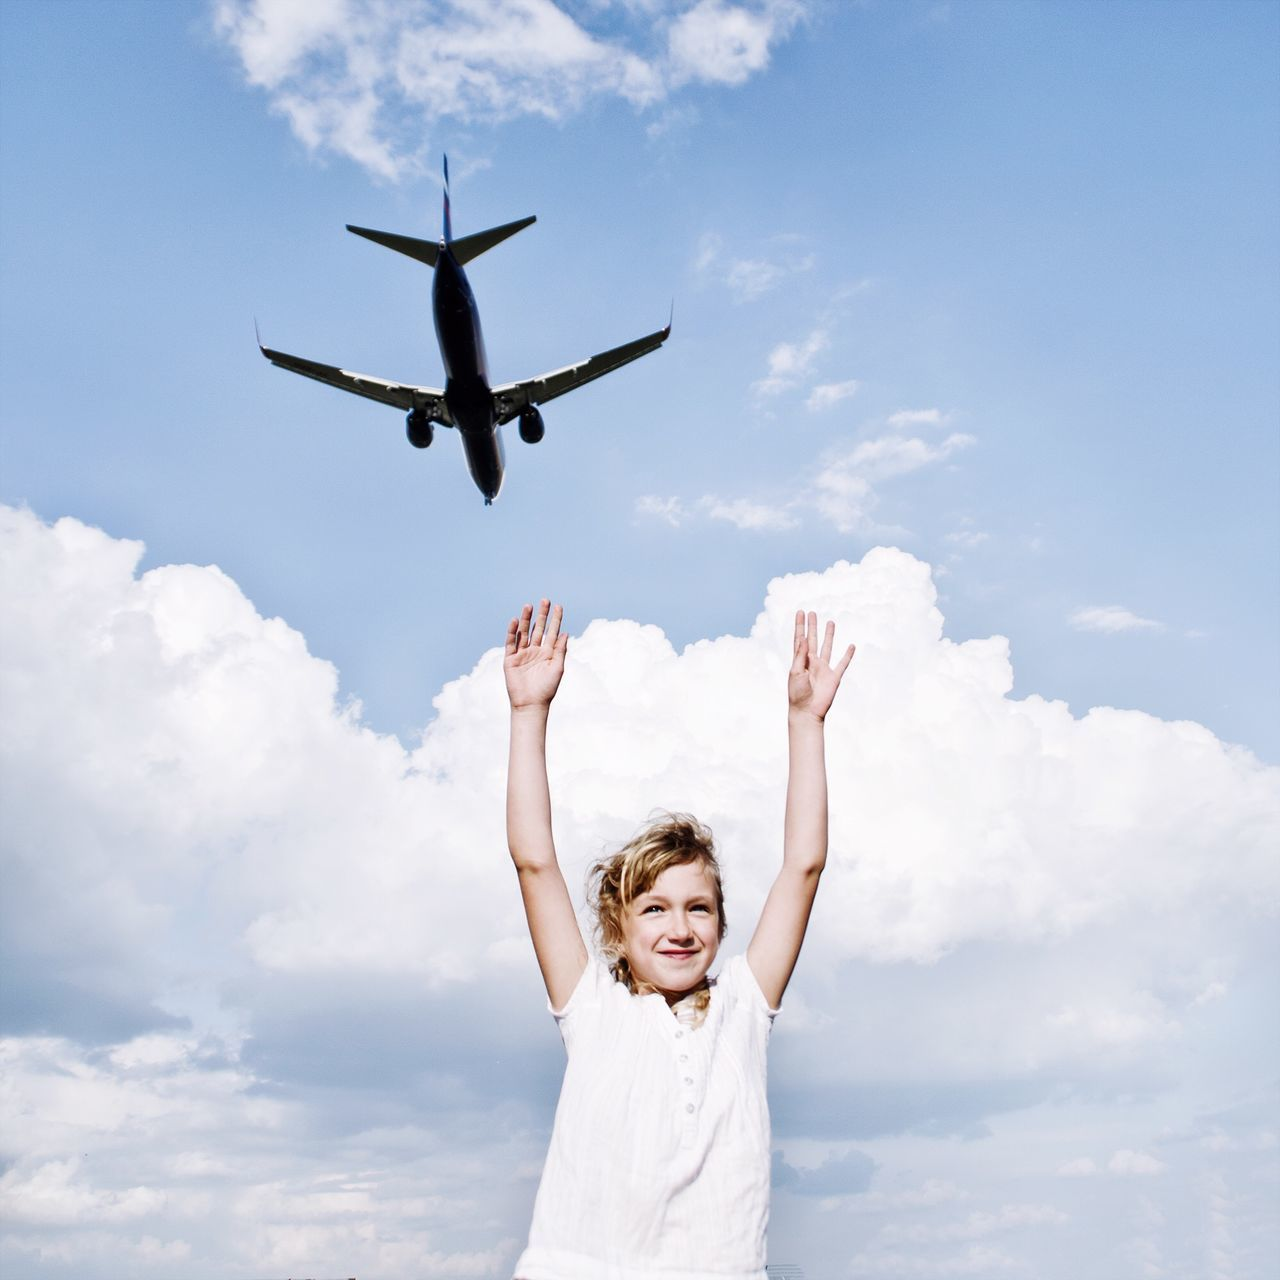 Beautiful stock photos of airplane, Air Vehicle, Airplane, Arms Outstretched, Arms Raised